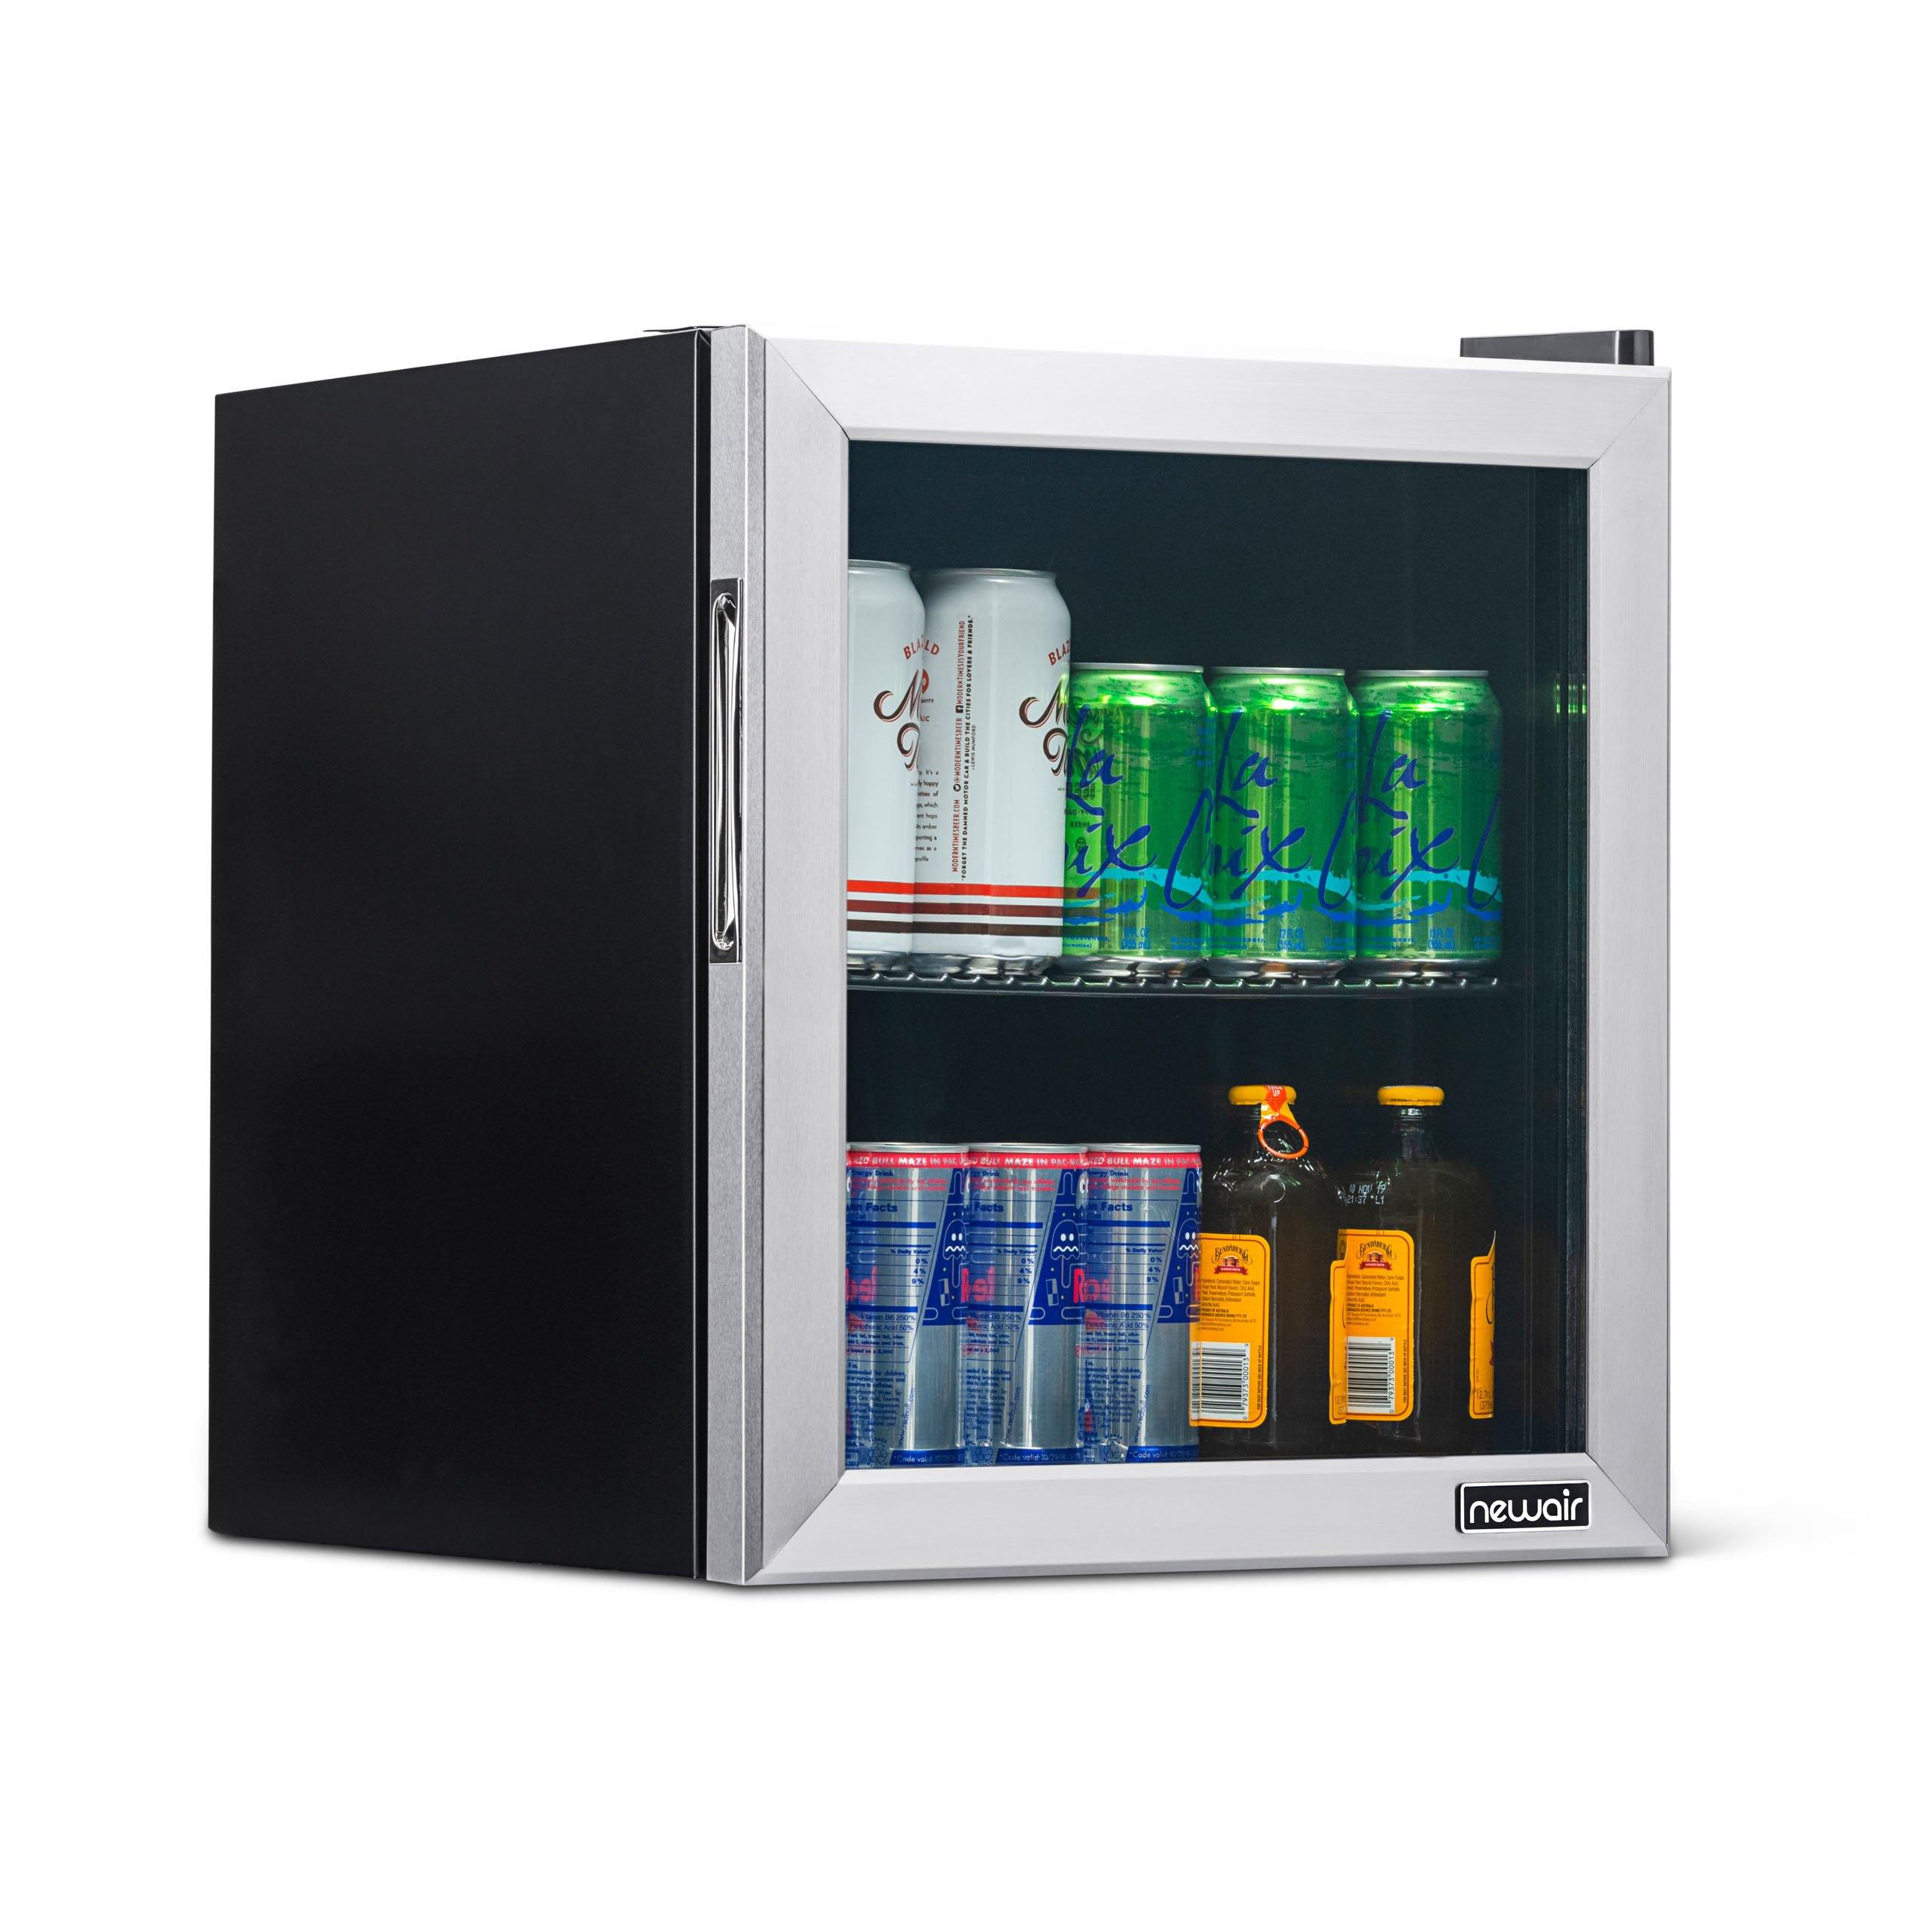 Newair 60 Can Beverage Cooler Compact Mini Fridge Chills Down To 34